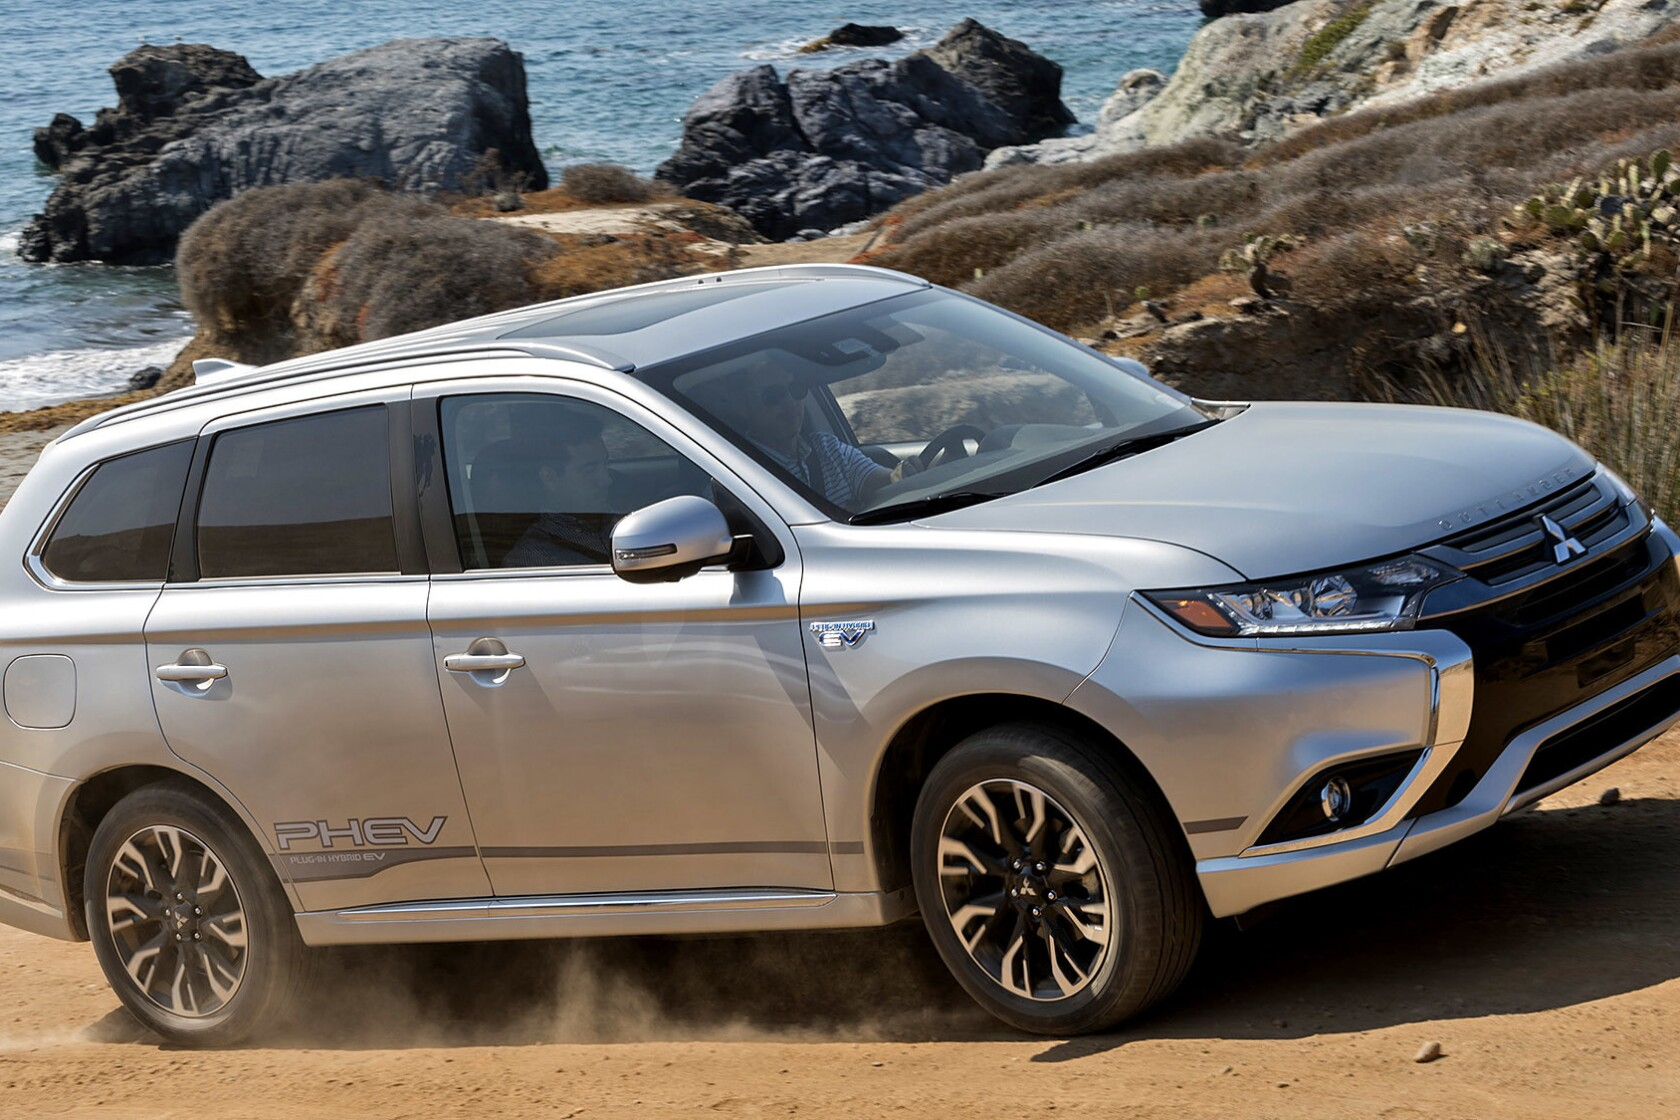 Review: Mitsubishi Outlander PHEV is plug-in, off-road ready